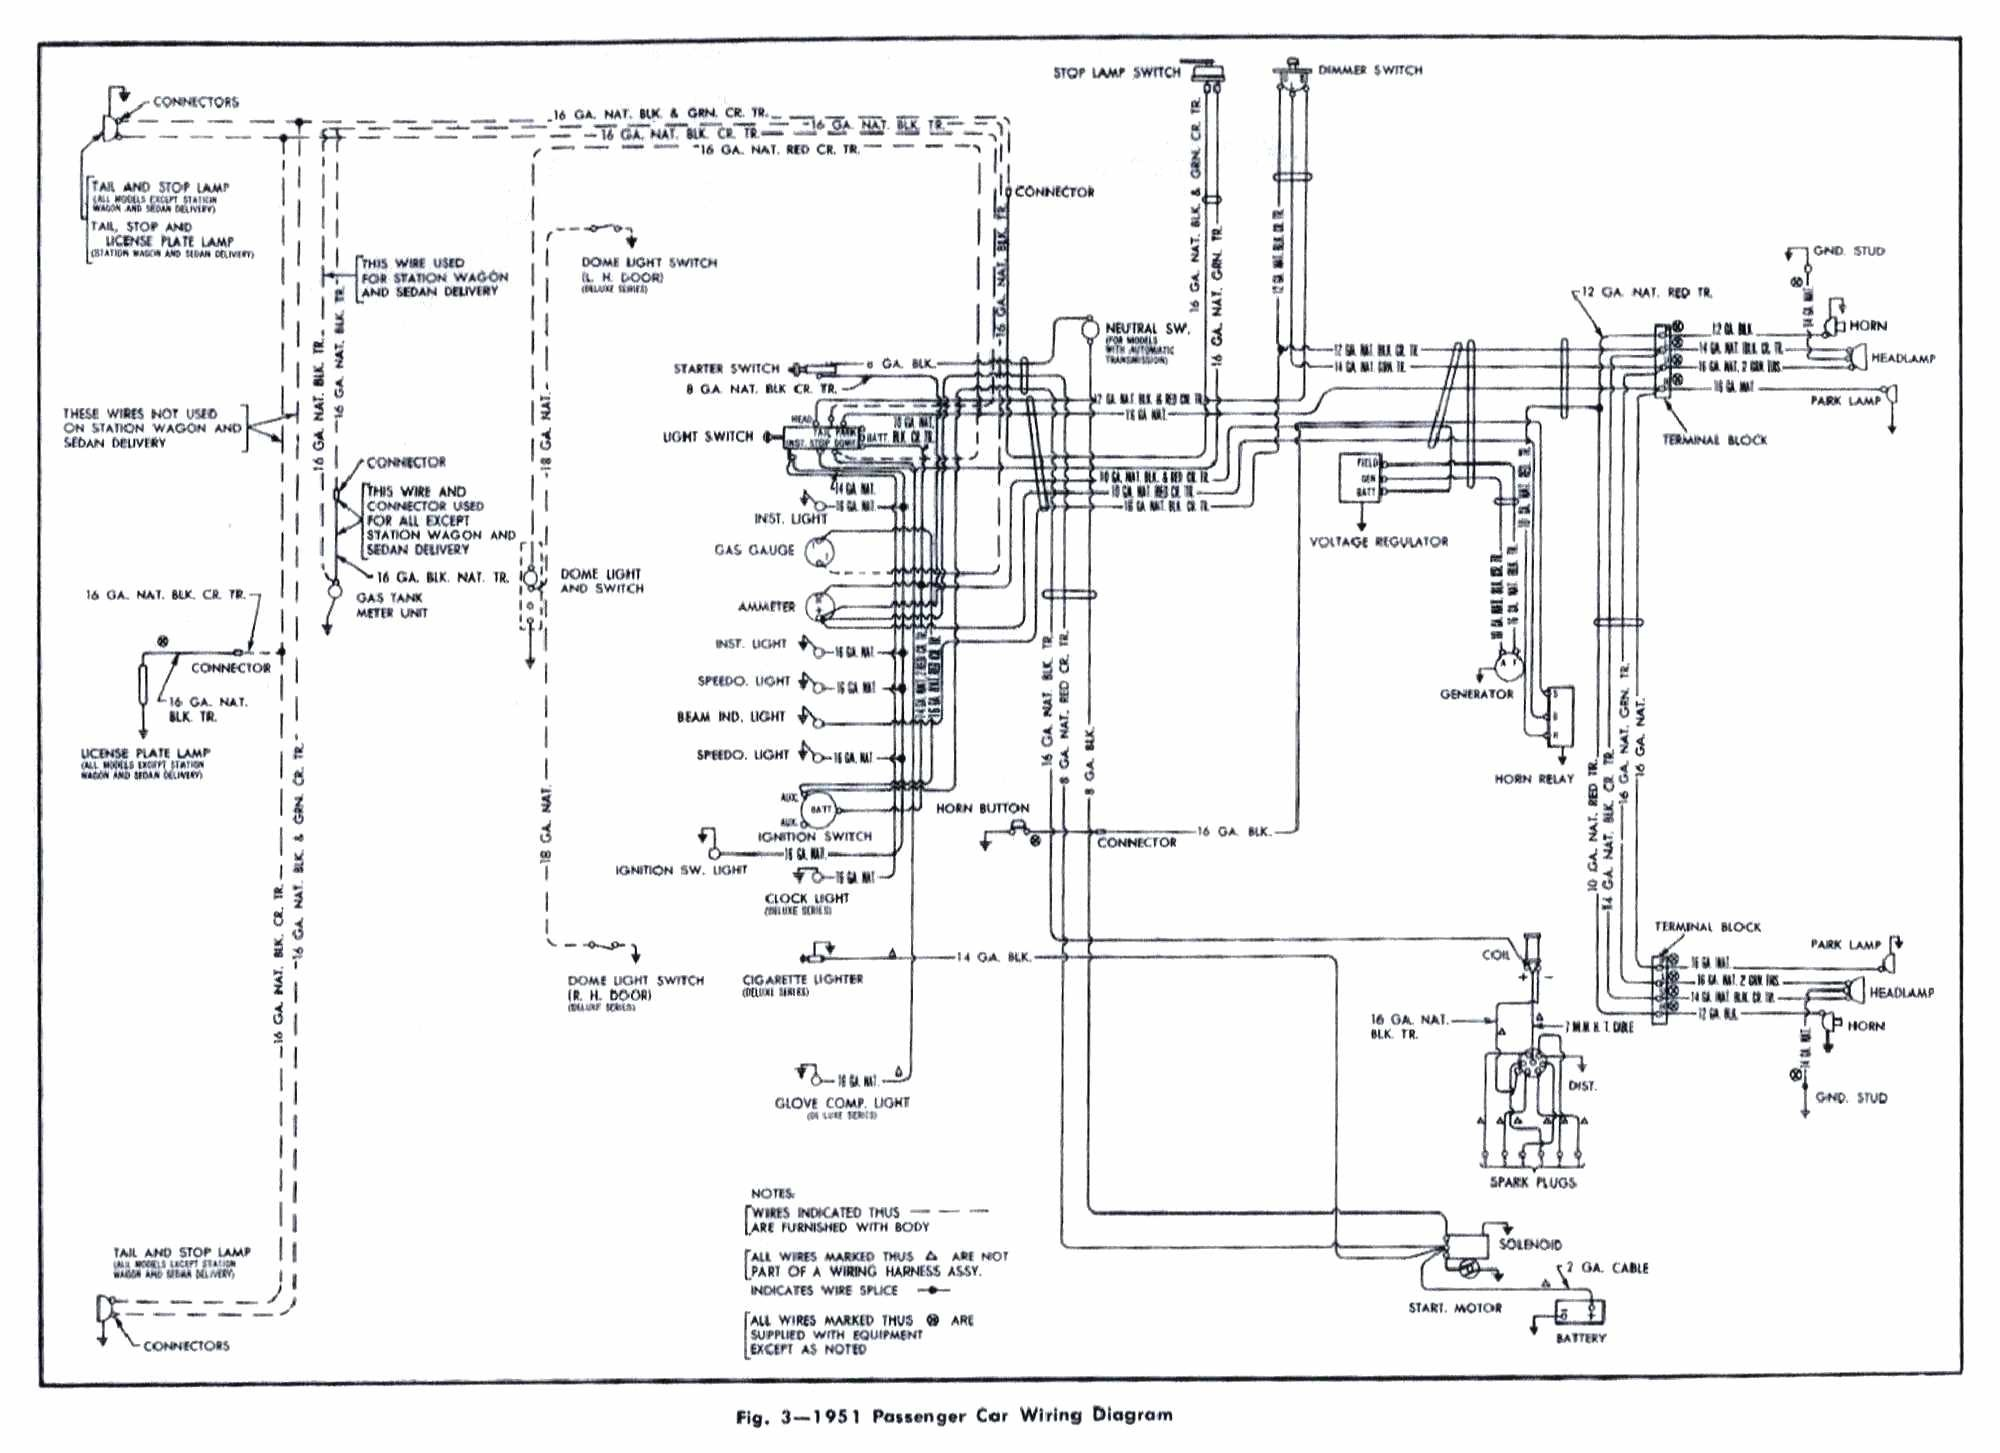 Car Underside Diagram Fine Underneath A Car Diagram Ideas Electrical System Block Of Car Underside Diagram